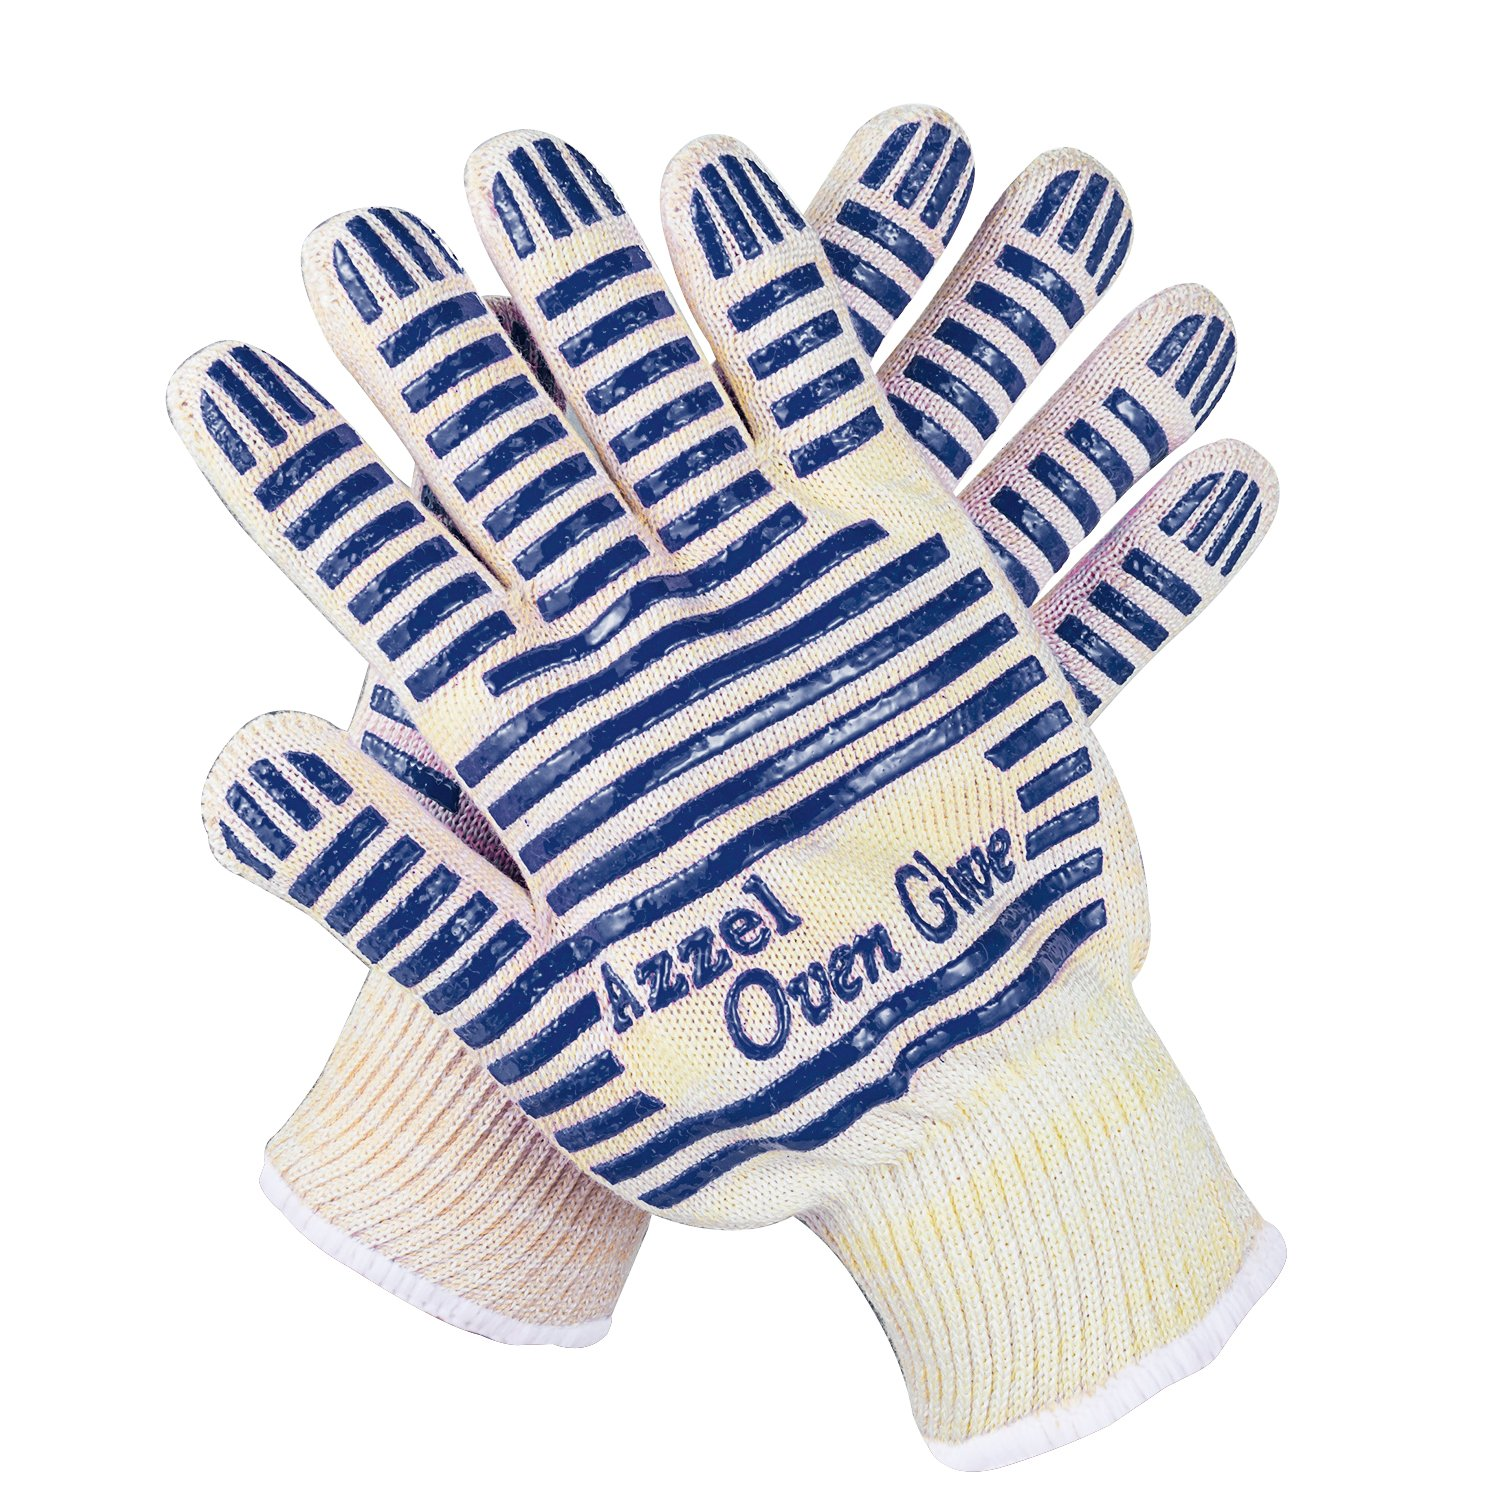 Azzel Oven Glove Heat Resistant Oven Mitts with Fingers,EN407 Certified Extreme Heat Up to 932°F (set of 2) by Azzel